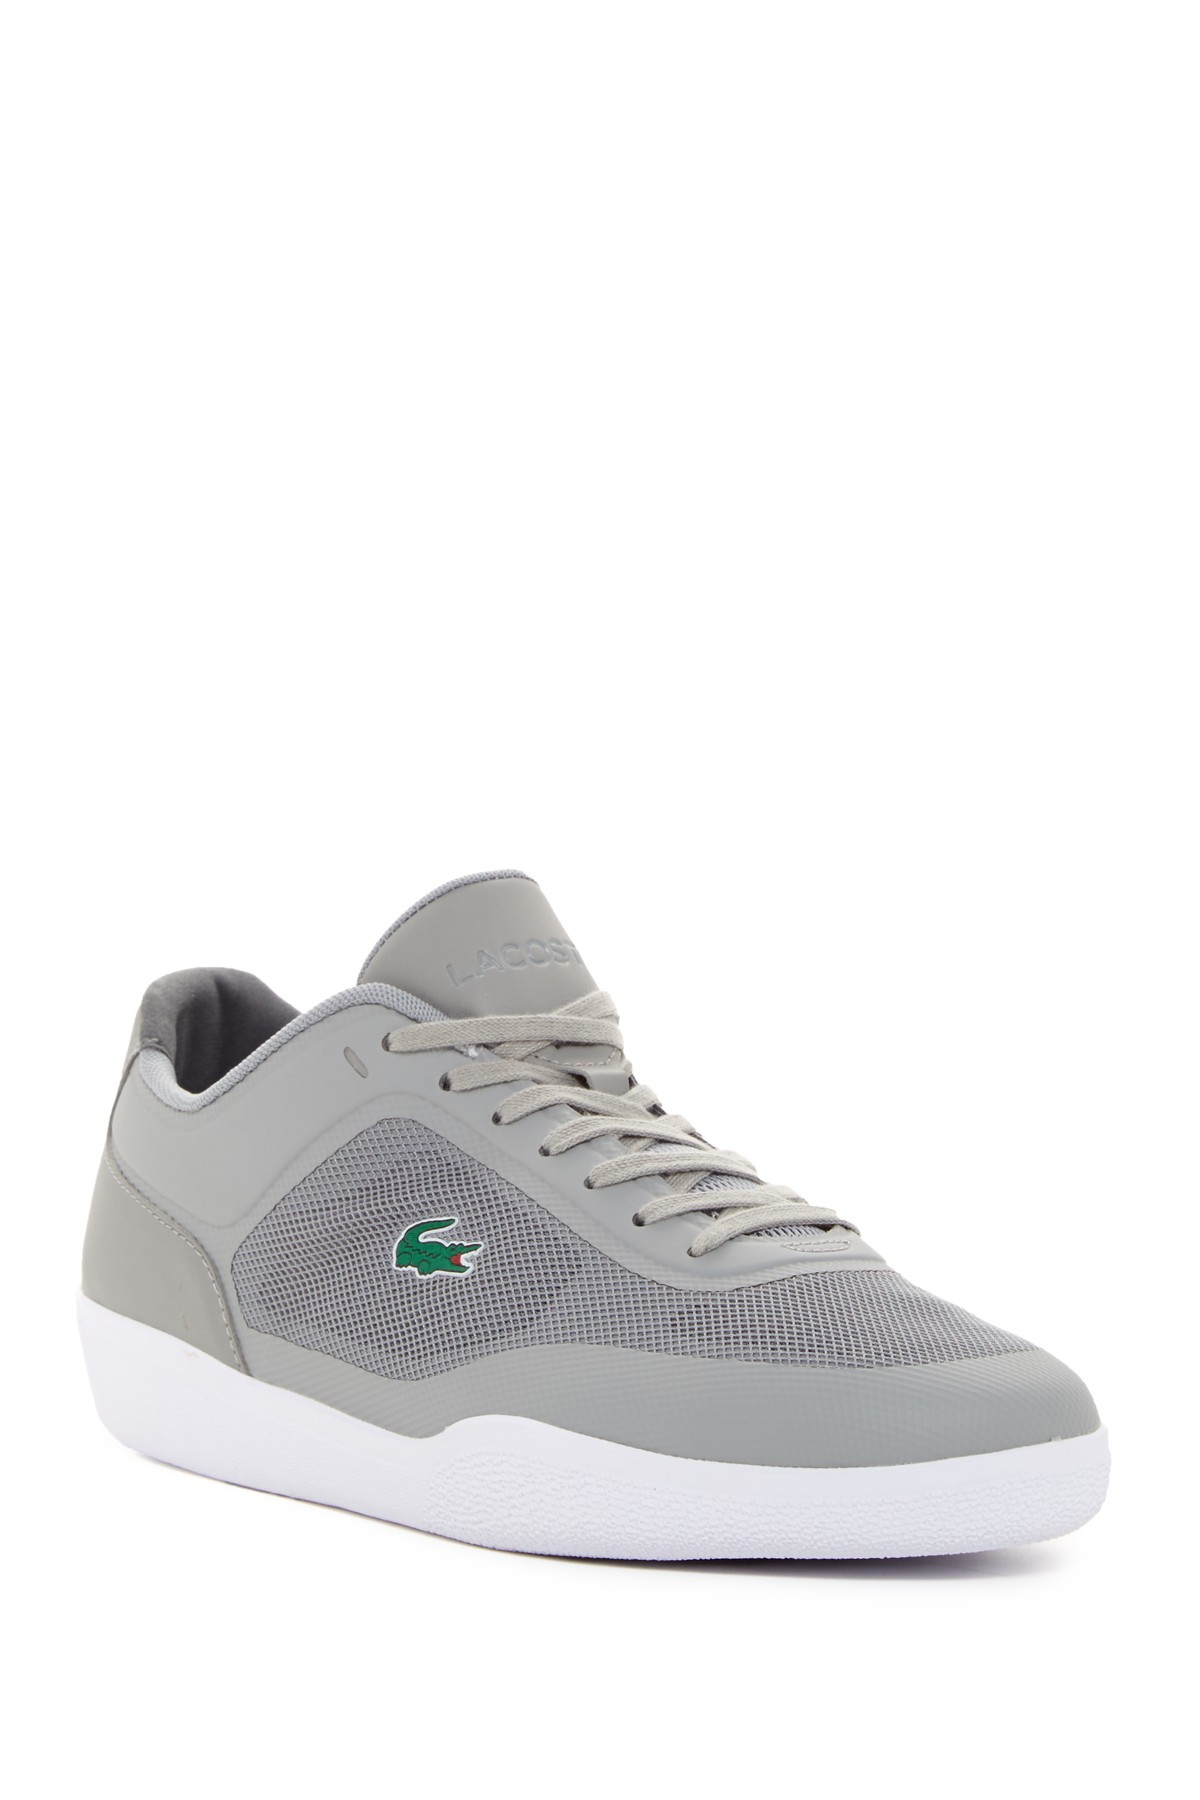 lacoste tramline sneaker in gray for men lyst